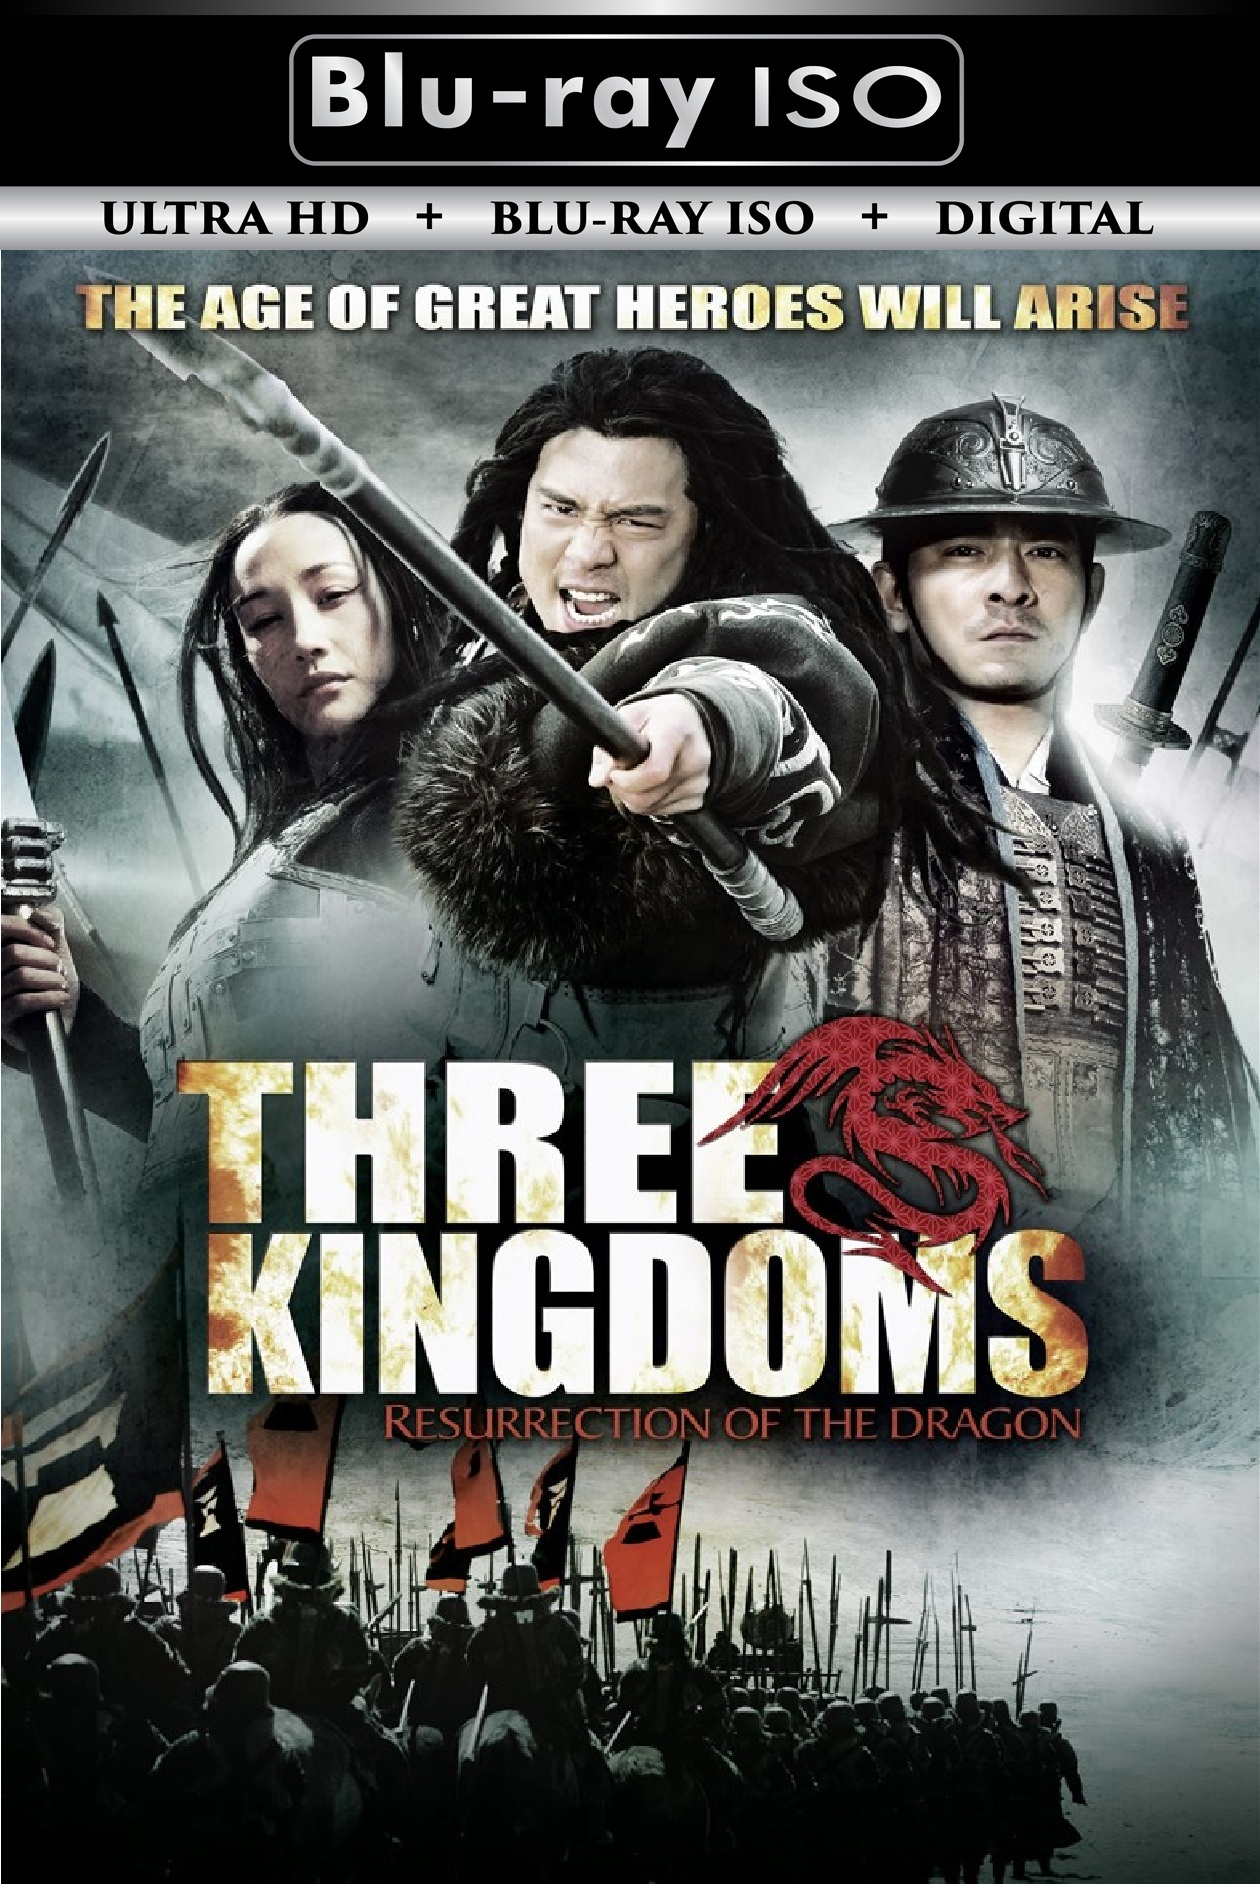 Three Kingdoms ...